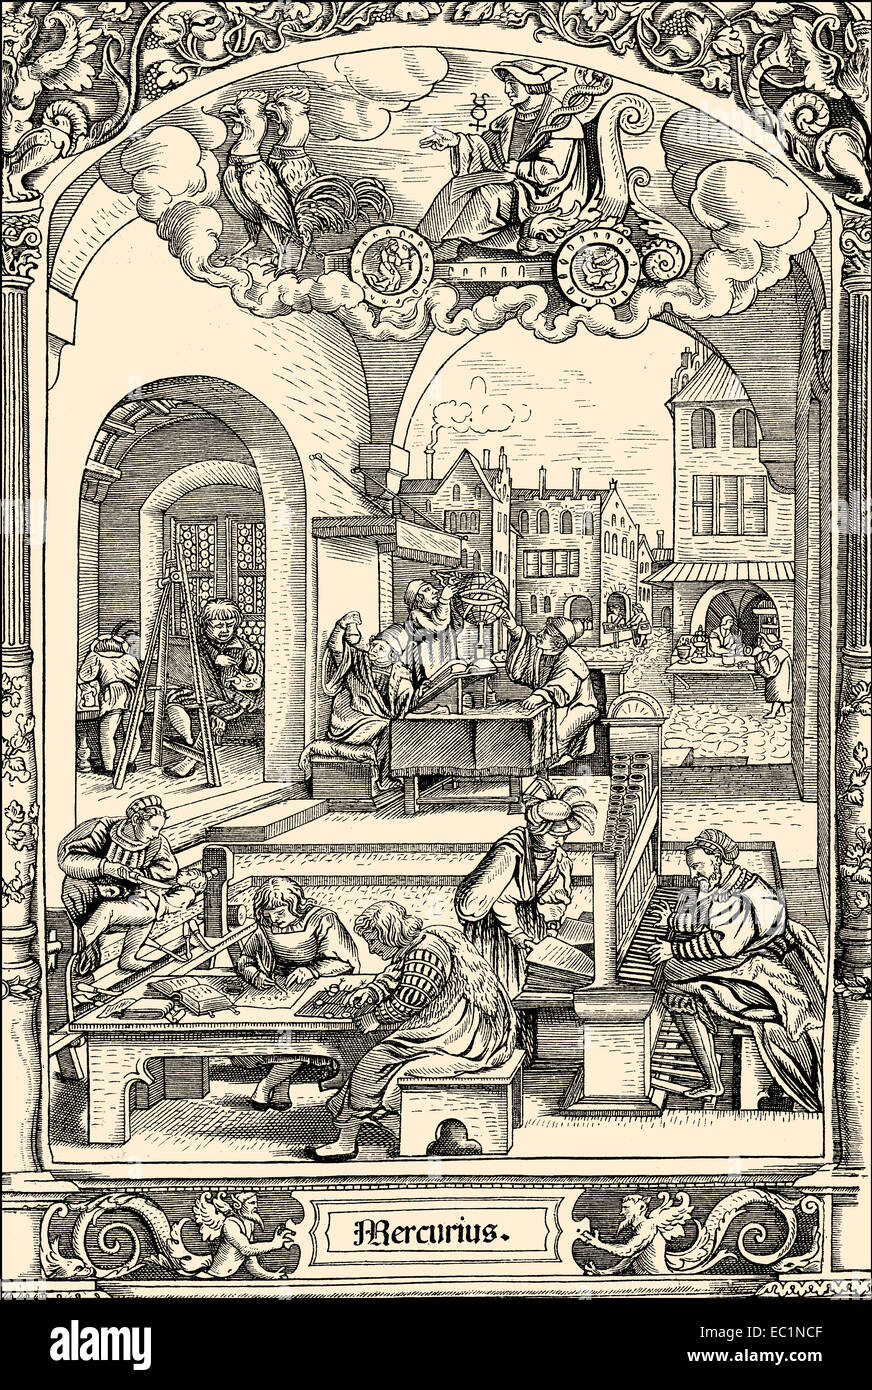 City life in the 16th century in Germany, - Stock Image